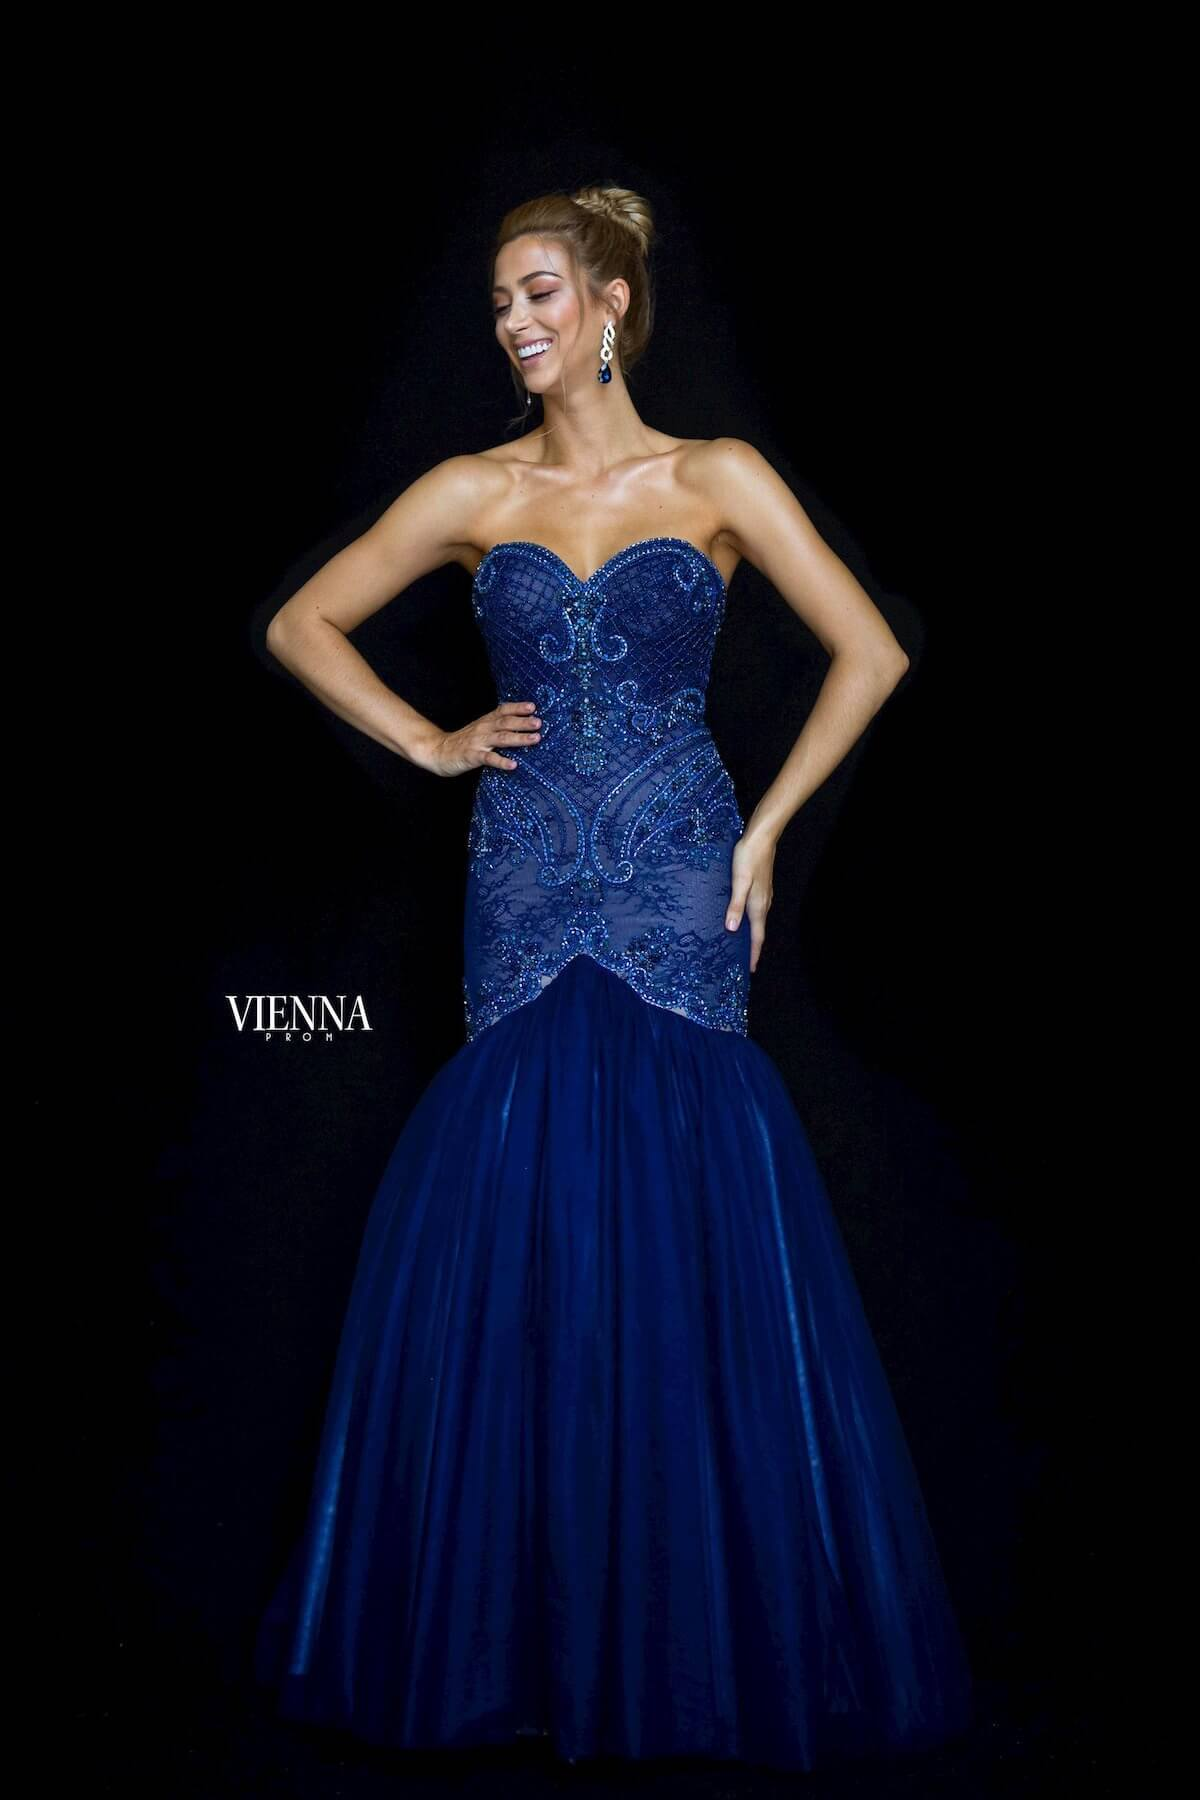 Style 82005 Vienna Royal Blue Size 6 Jewelled Prom Tulle Mermaid Dress on Queenly